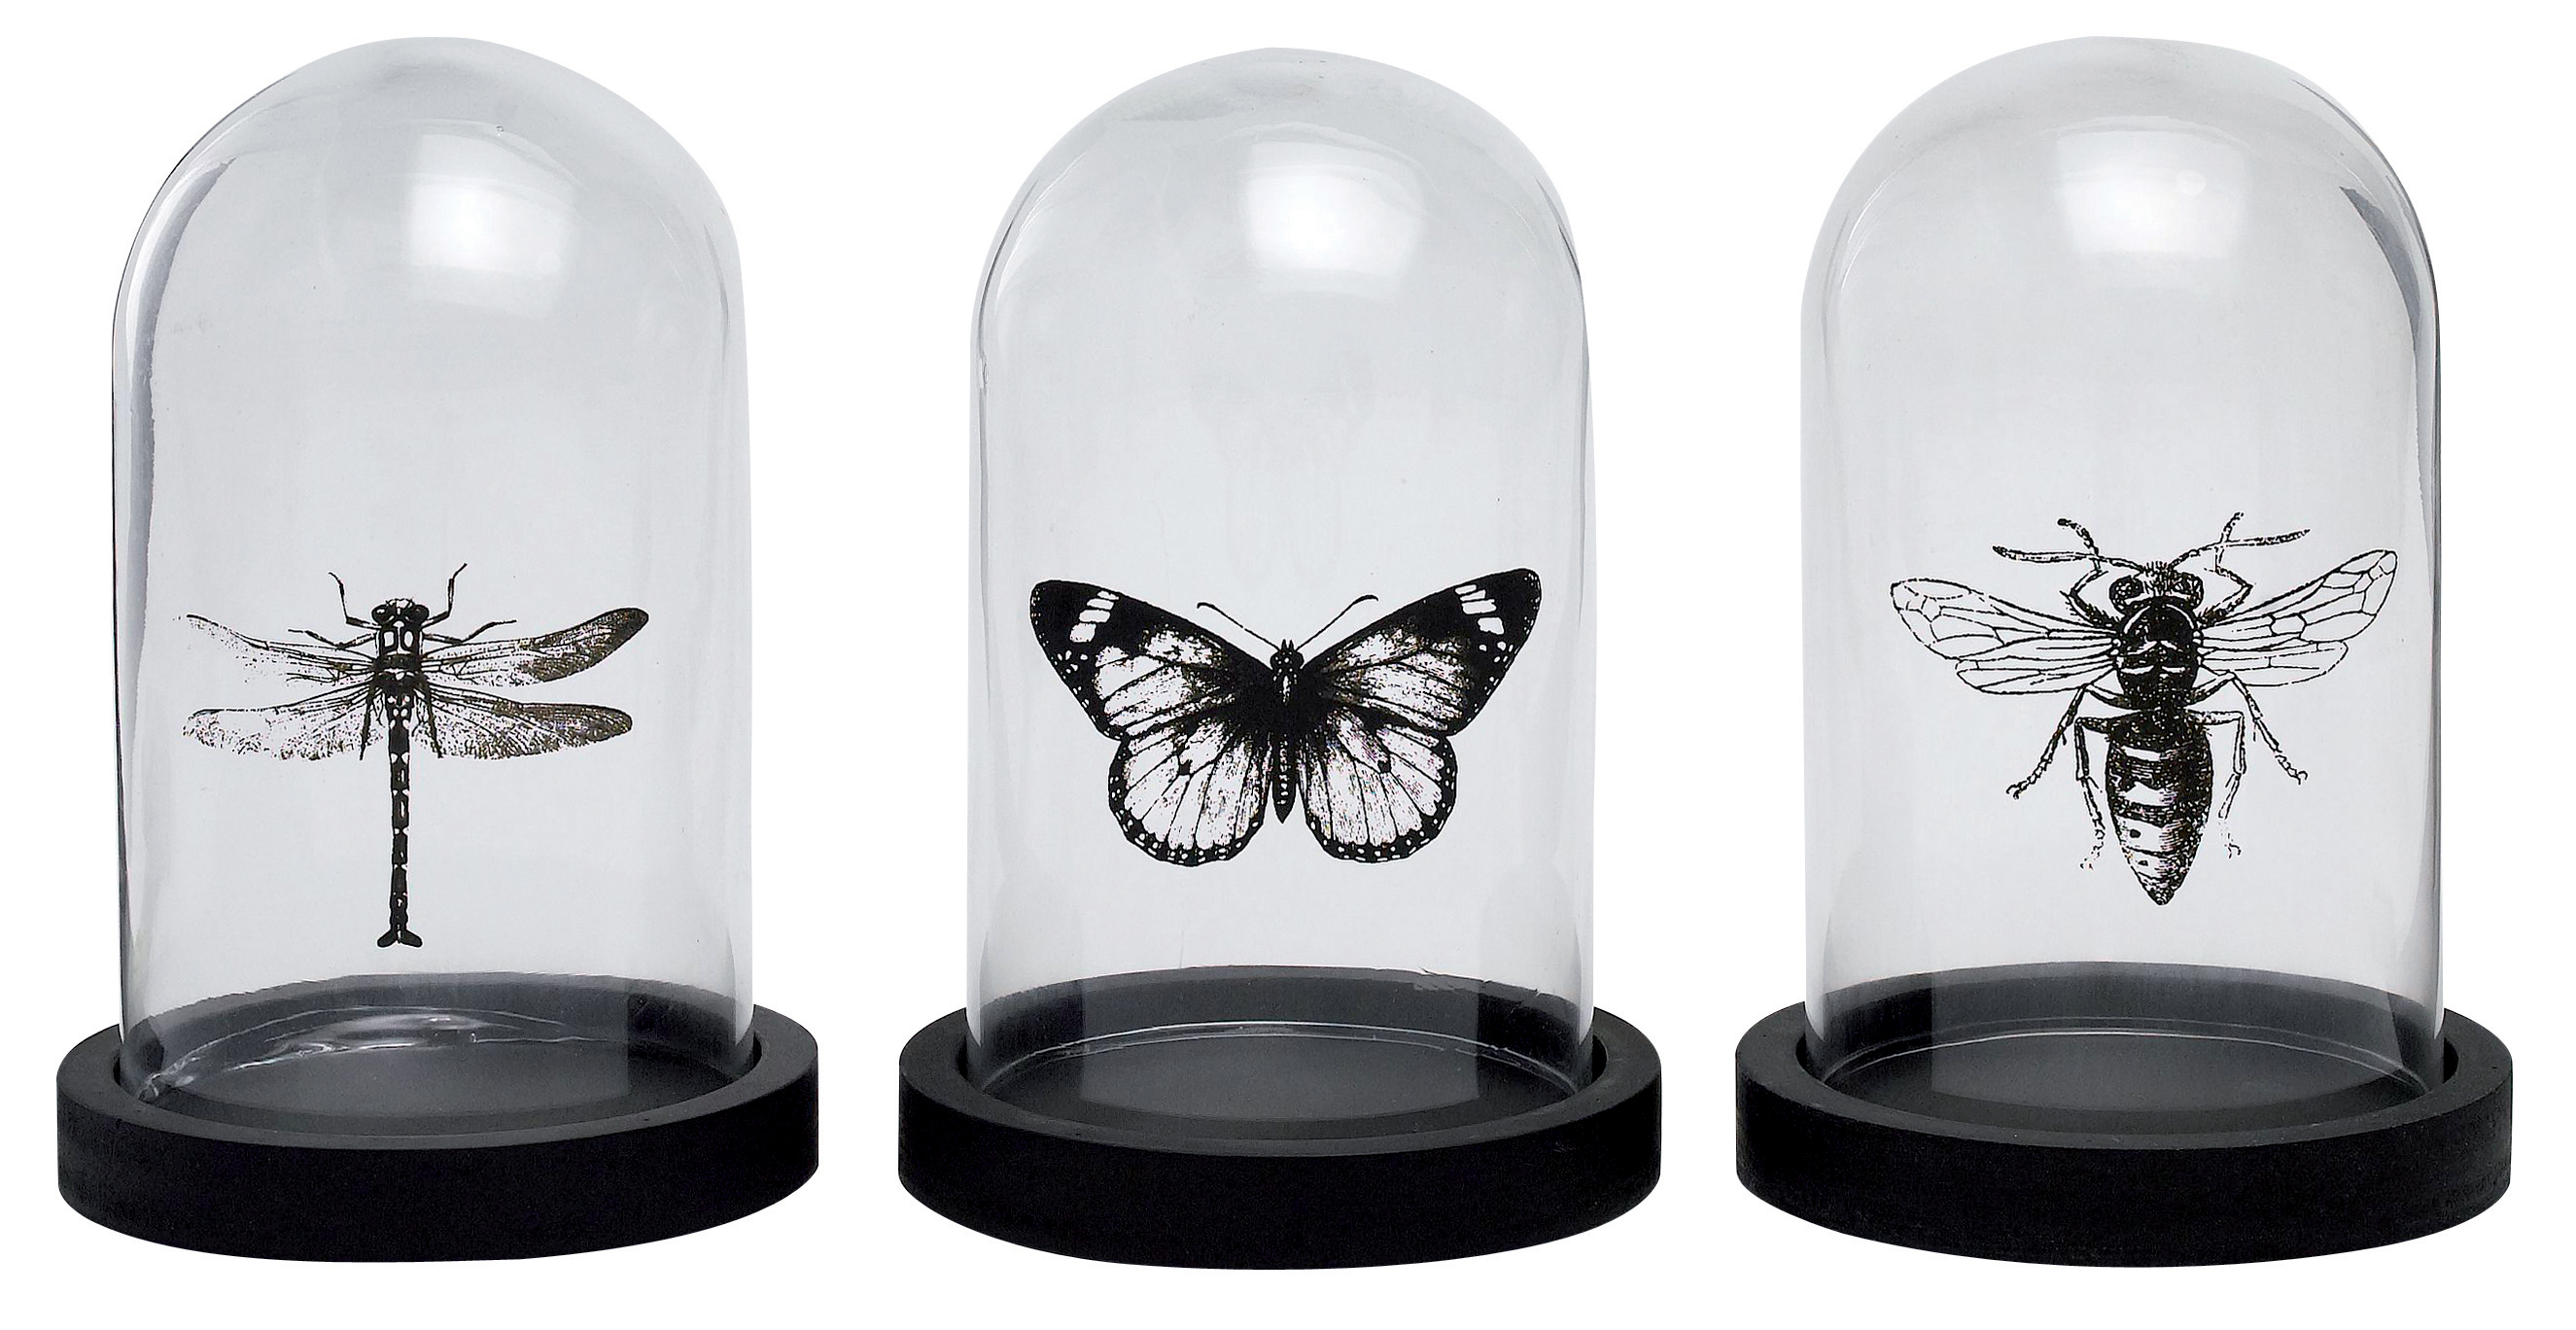 papillons insectes conforama 359 degr s le blog 359 degr s le blog. Black Bedroom Furniture Sets. Home Design Ideas